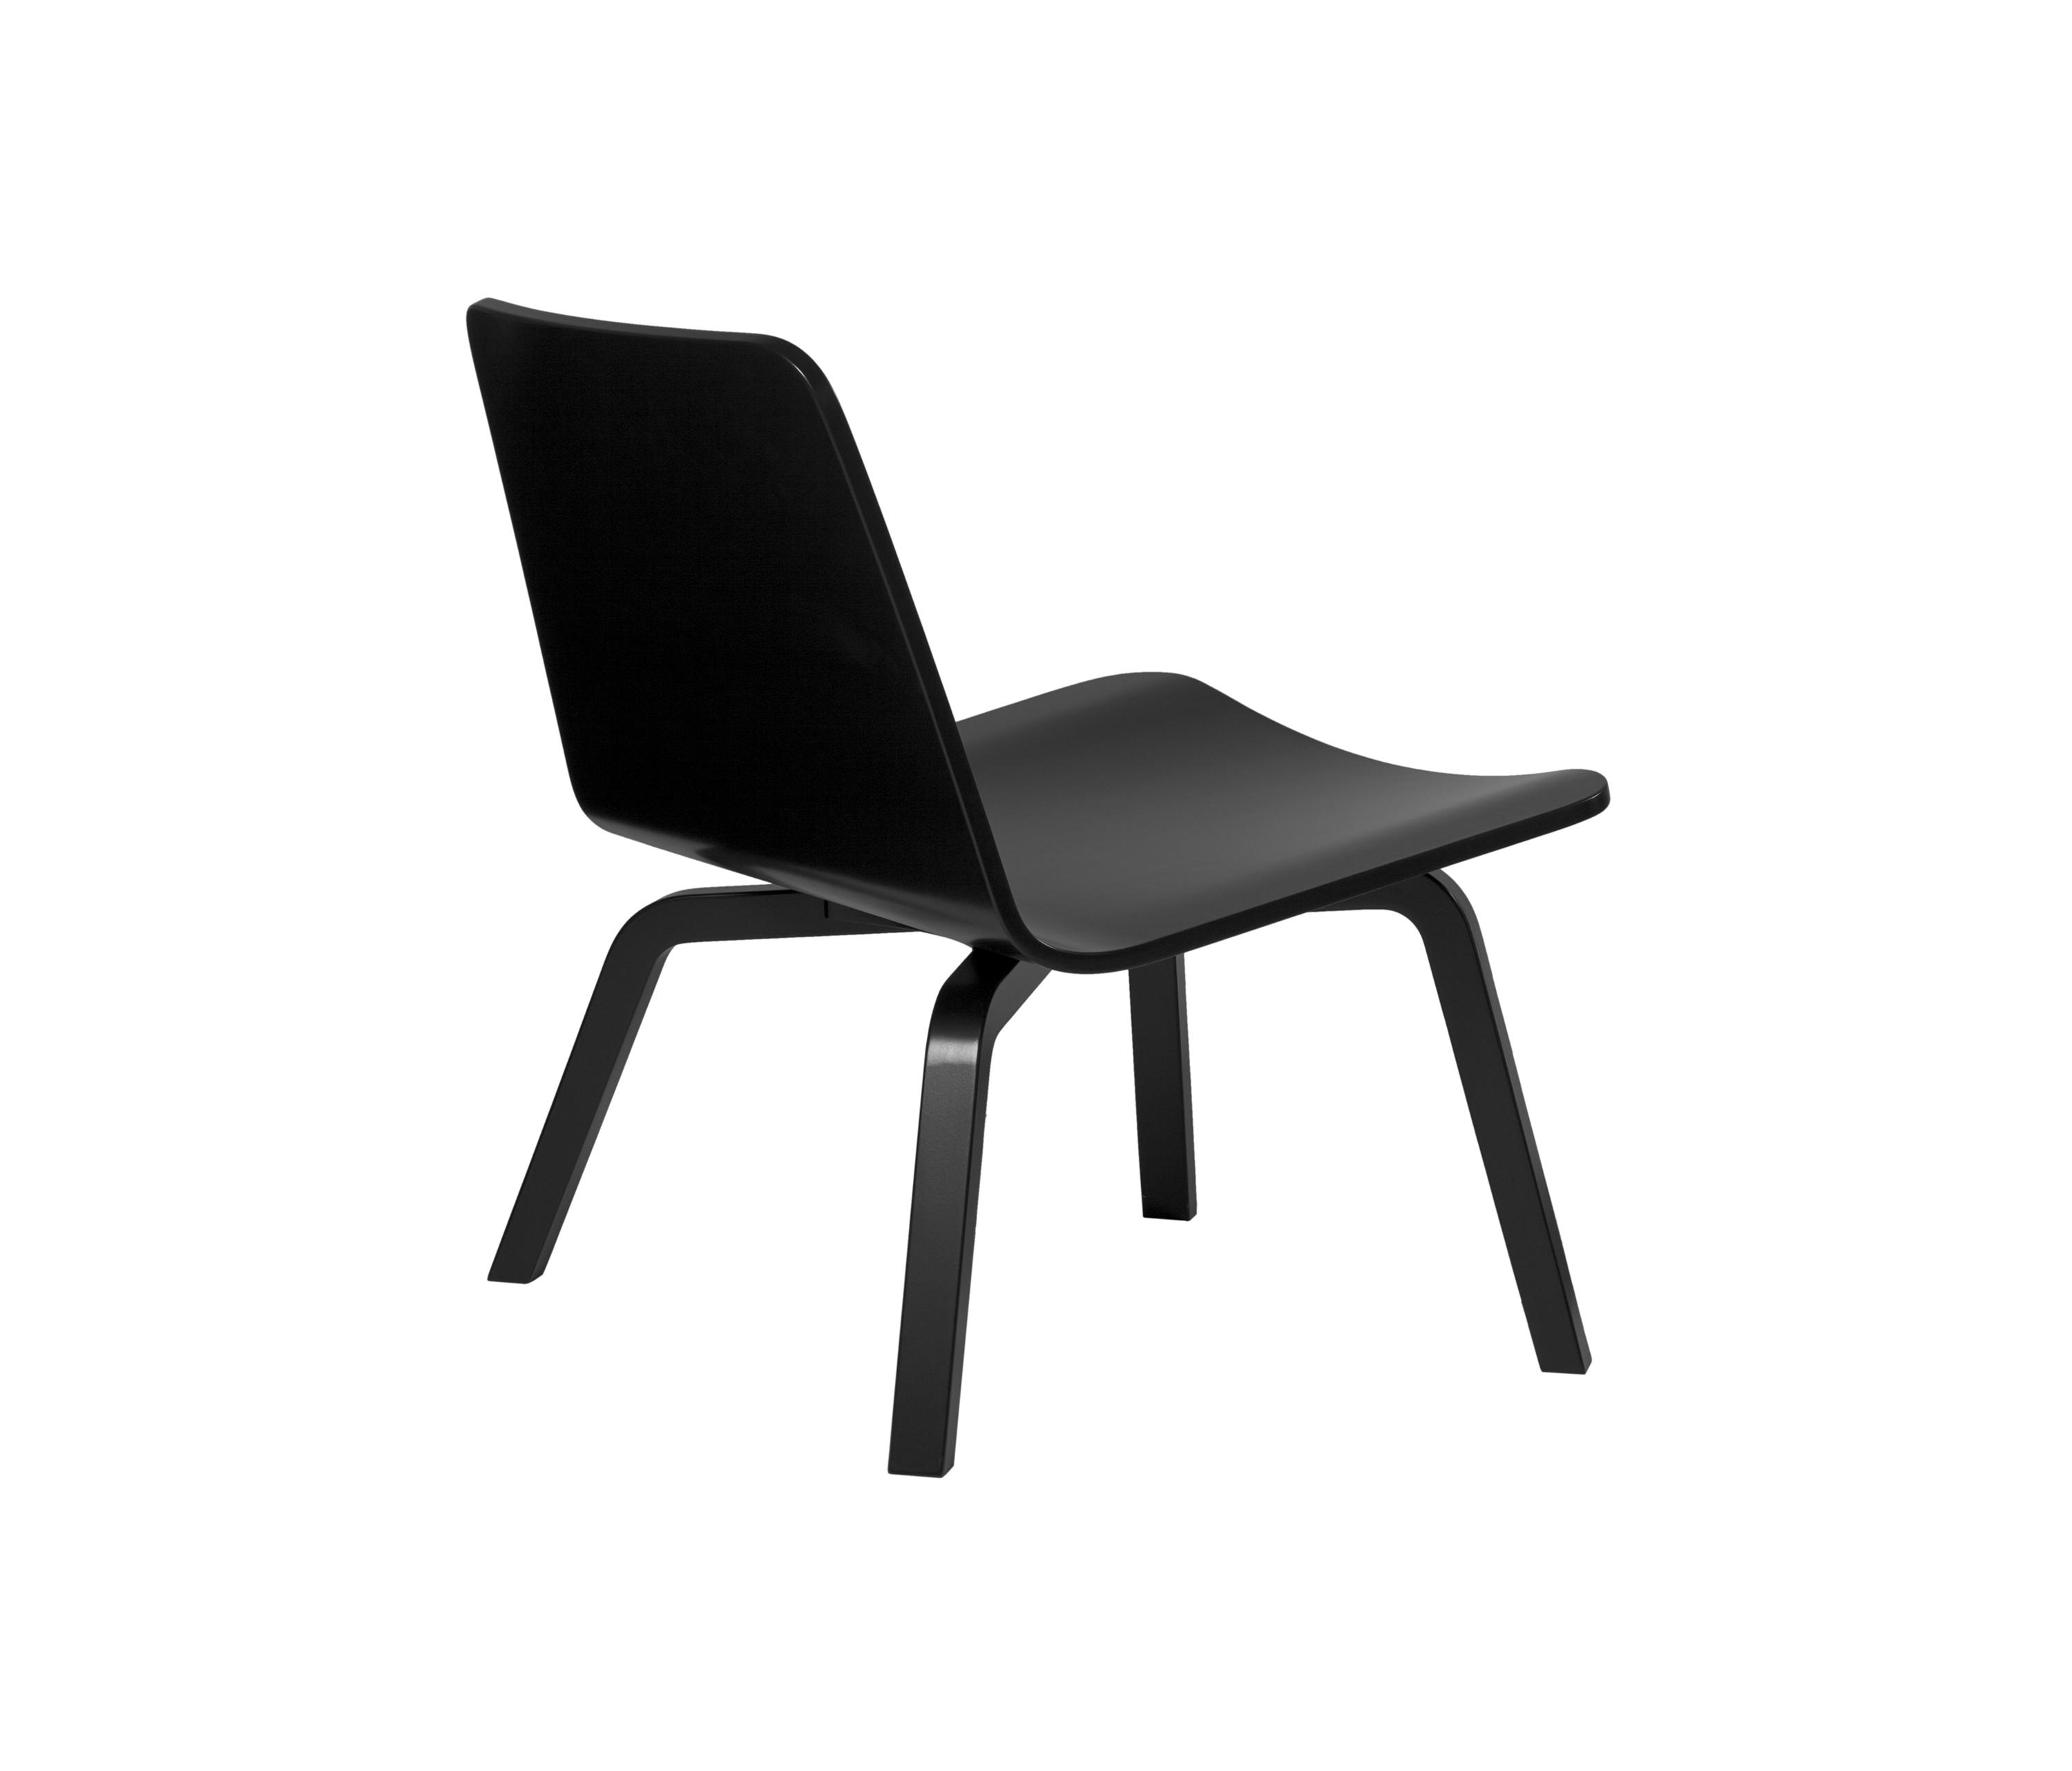 Lounge Chair Hk002 Lounge Chairs From Artek Architonic